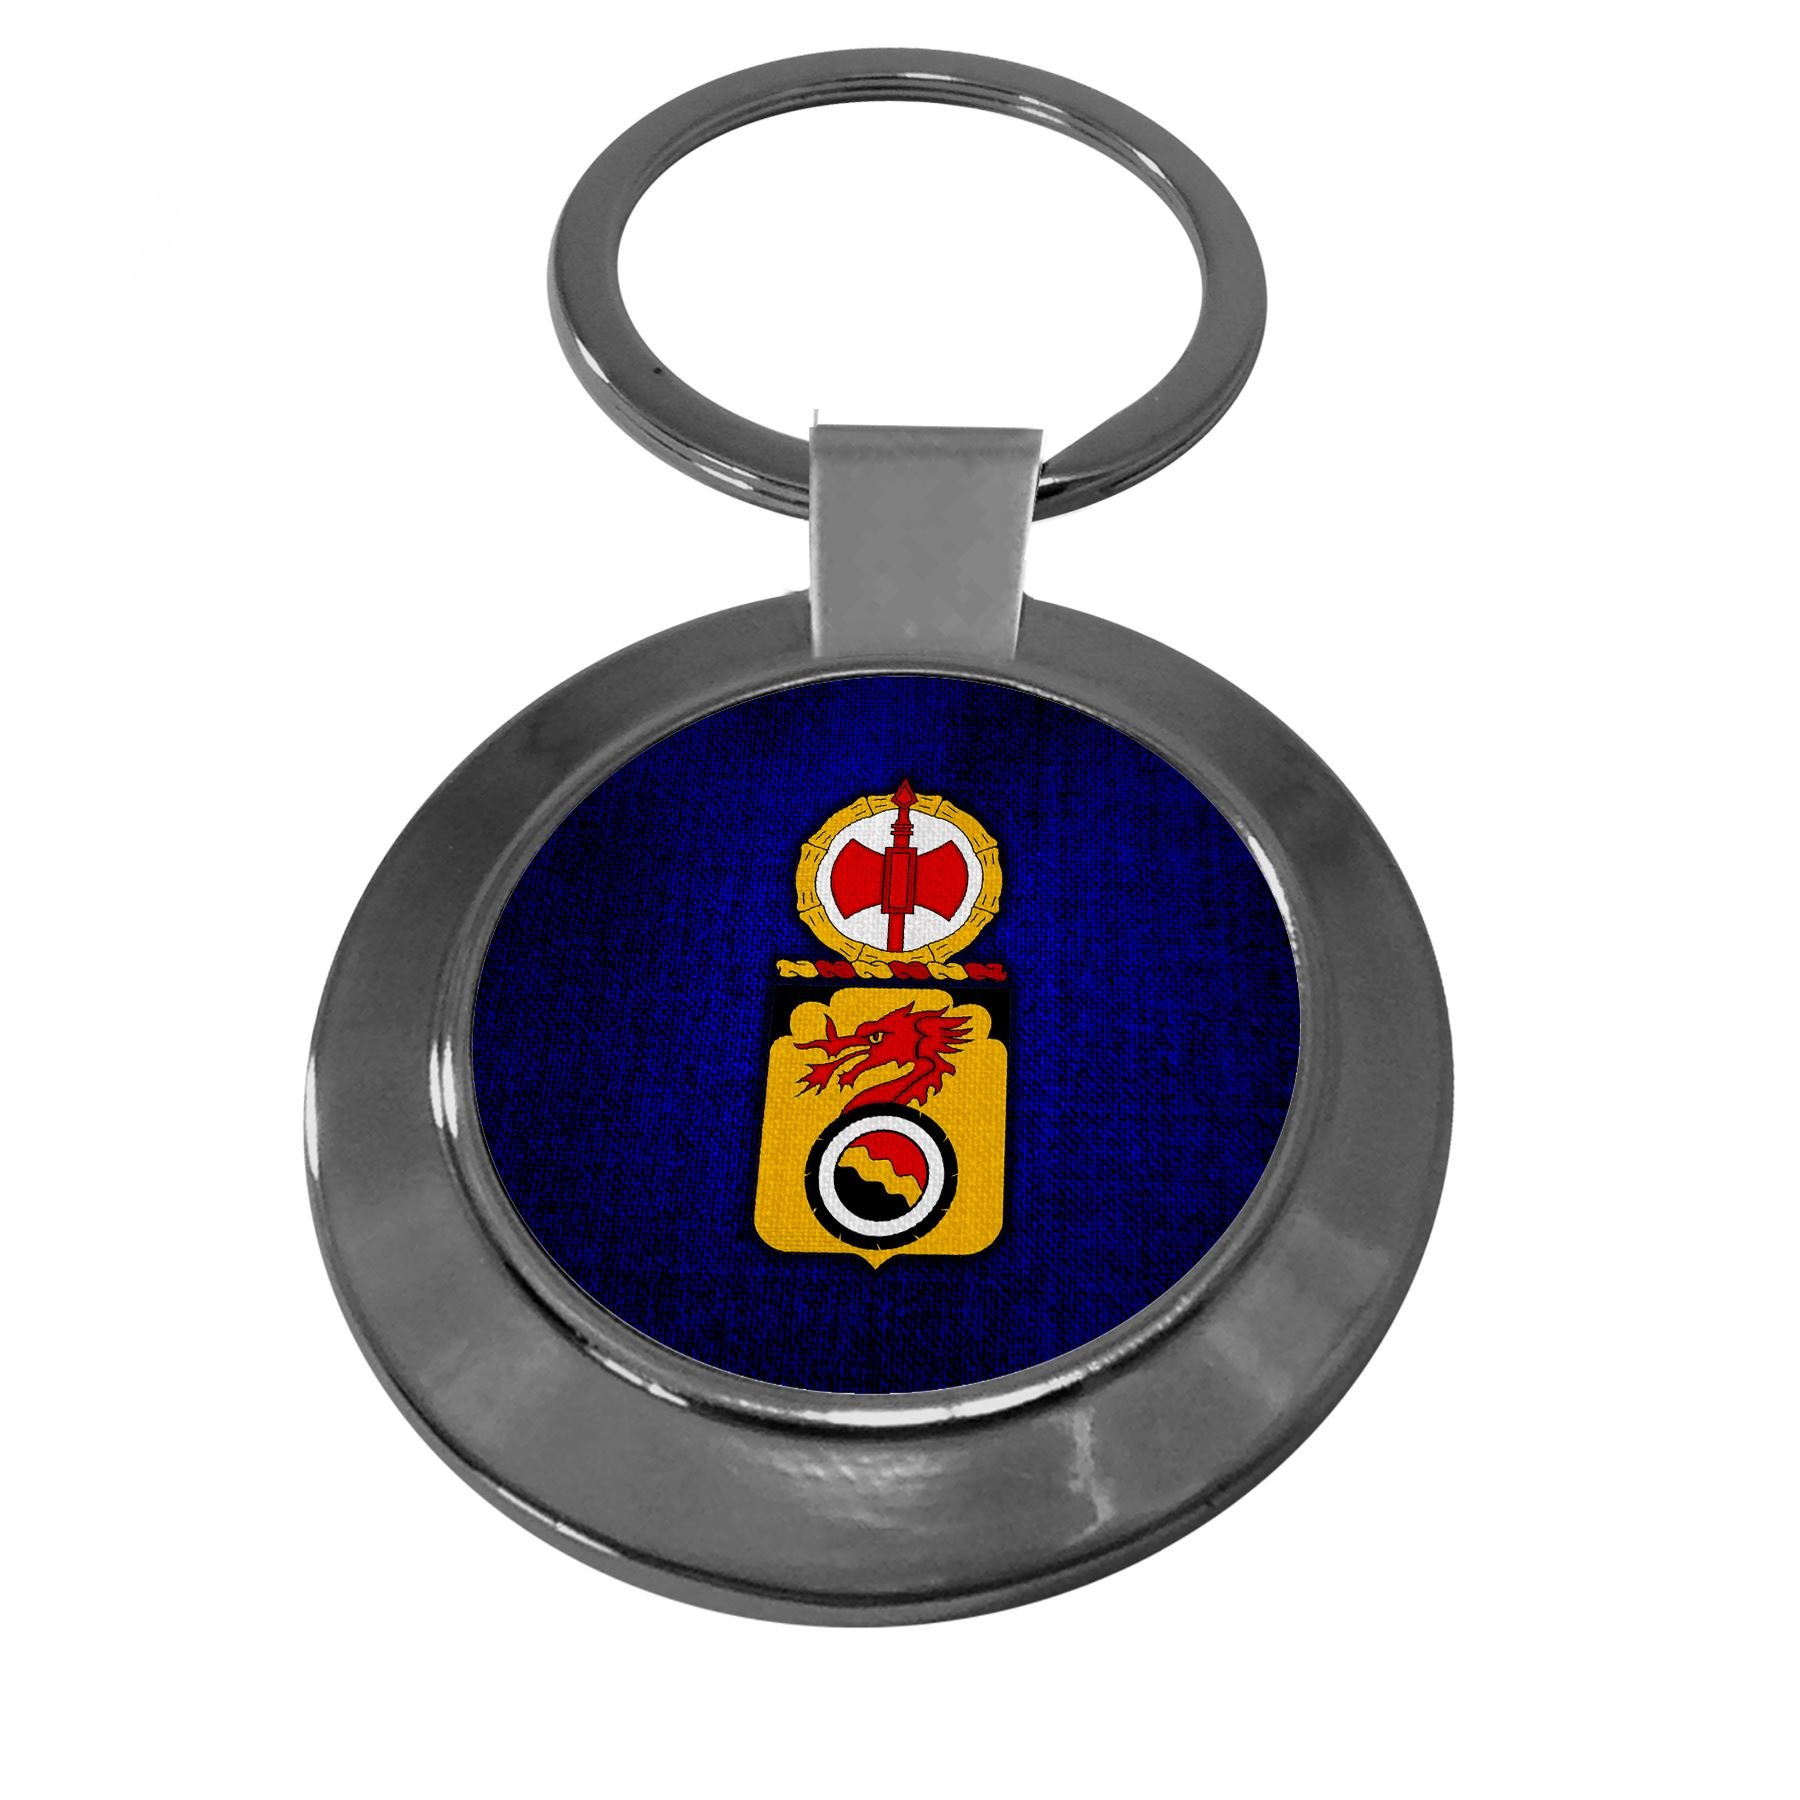 Premium Key Ring with U.S. Army 7th Transportation Battalion, coat of arms